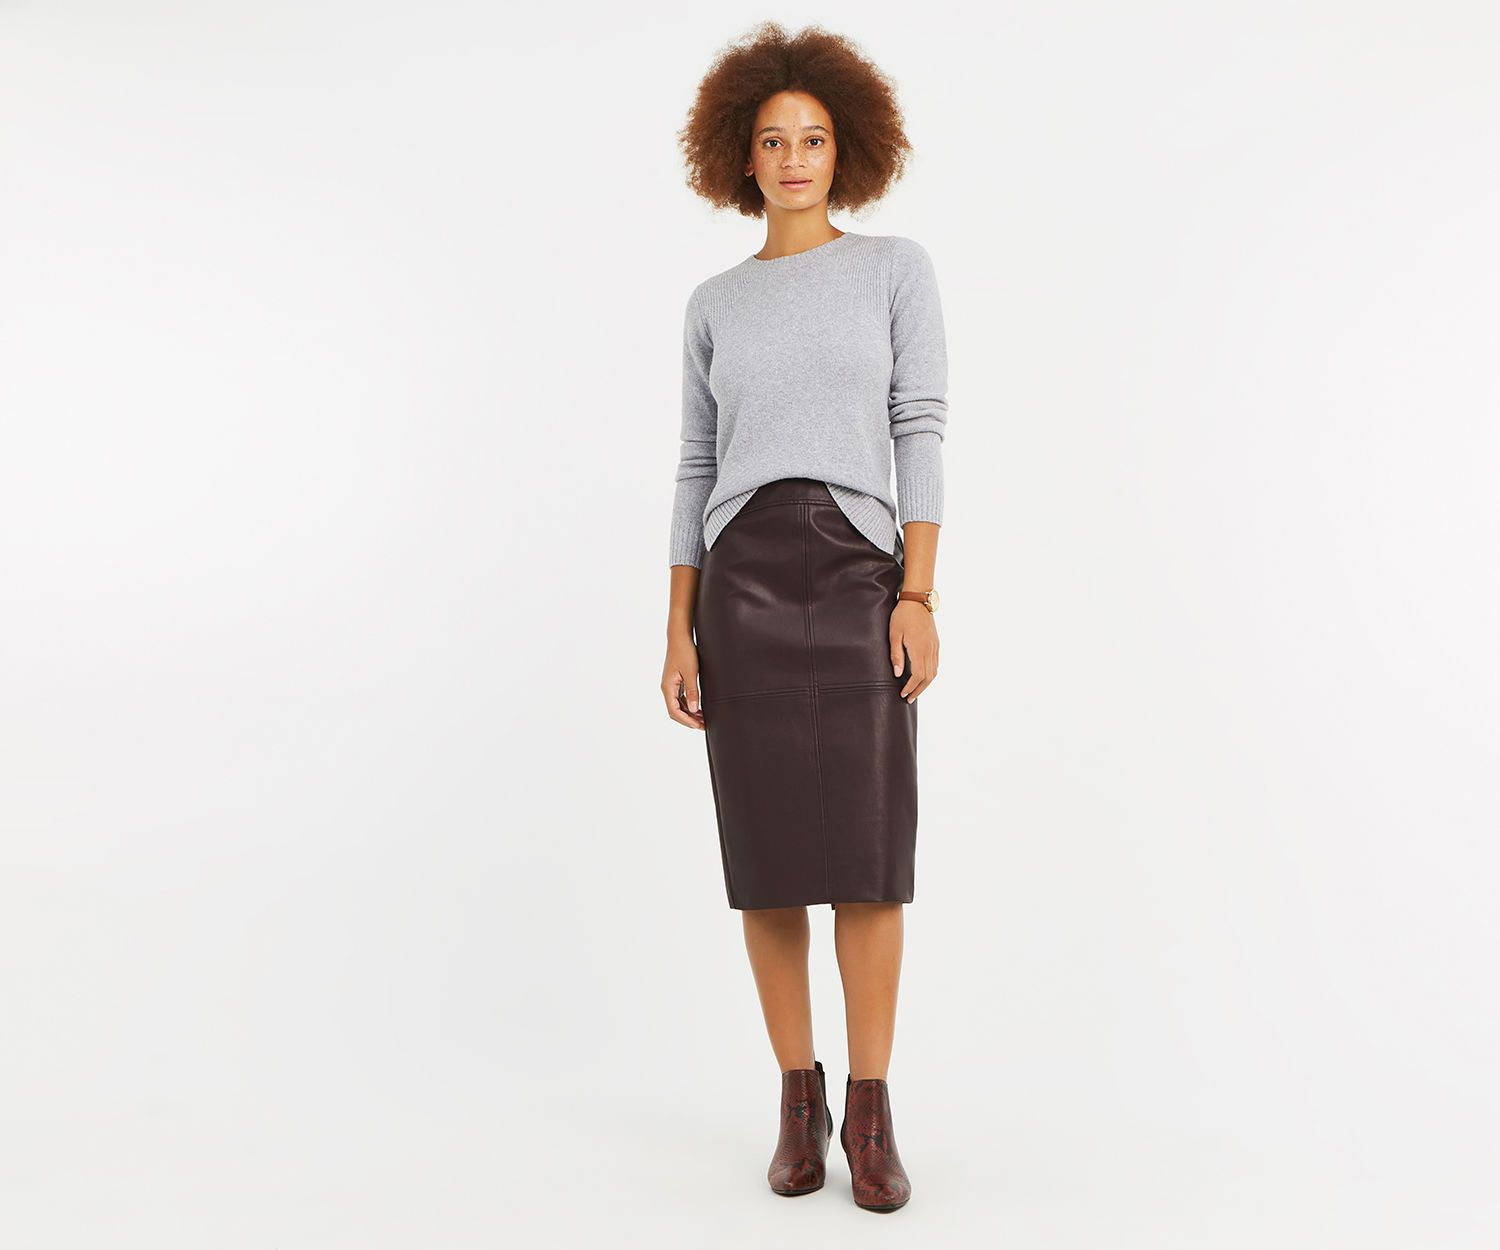 52c7c0c3703e Oasis Faux Leather Midi Skirt – DACC